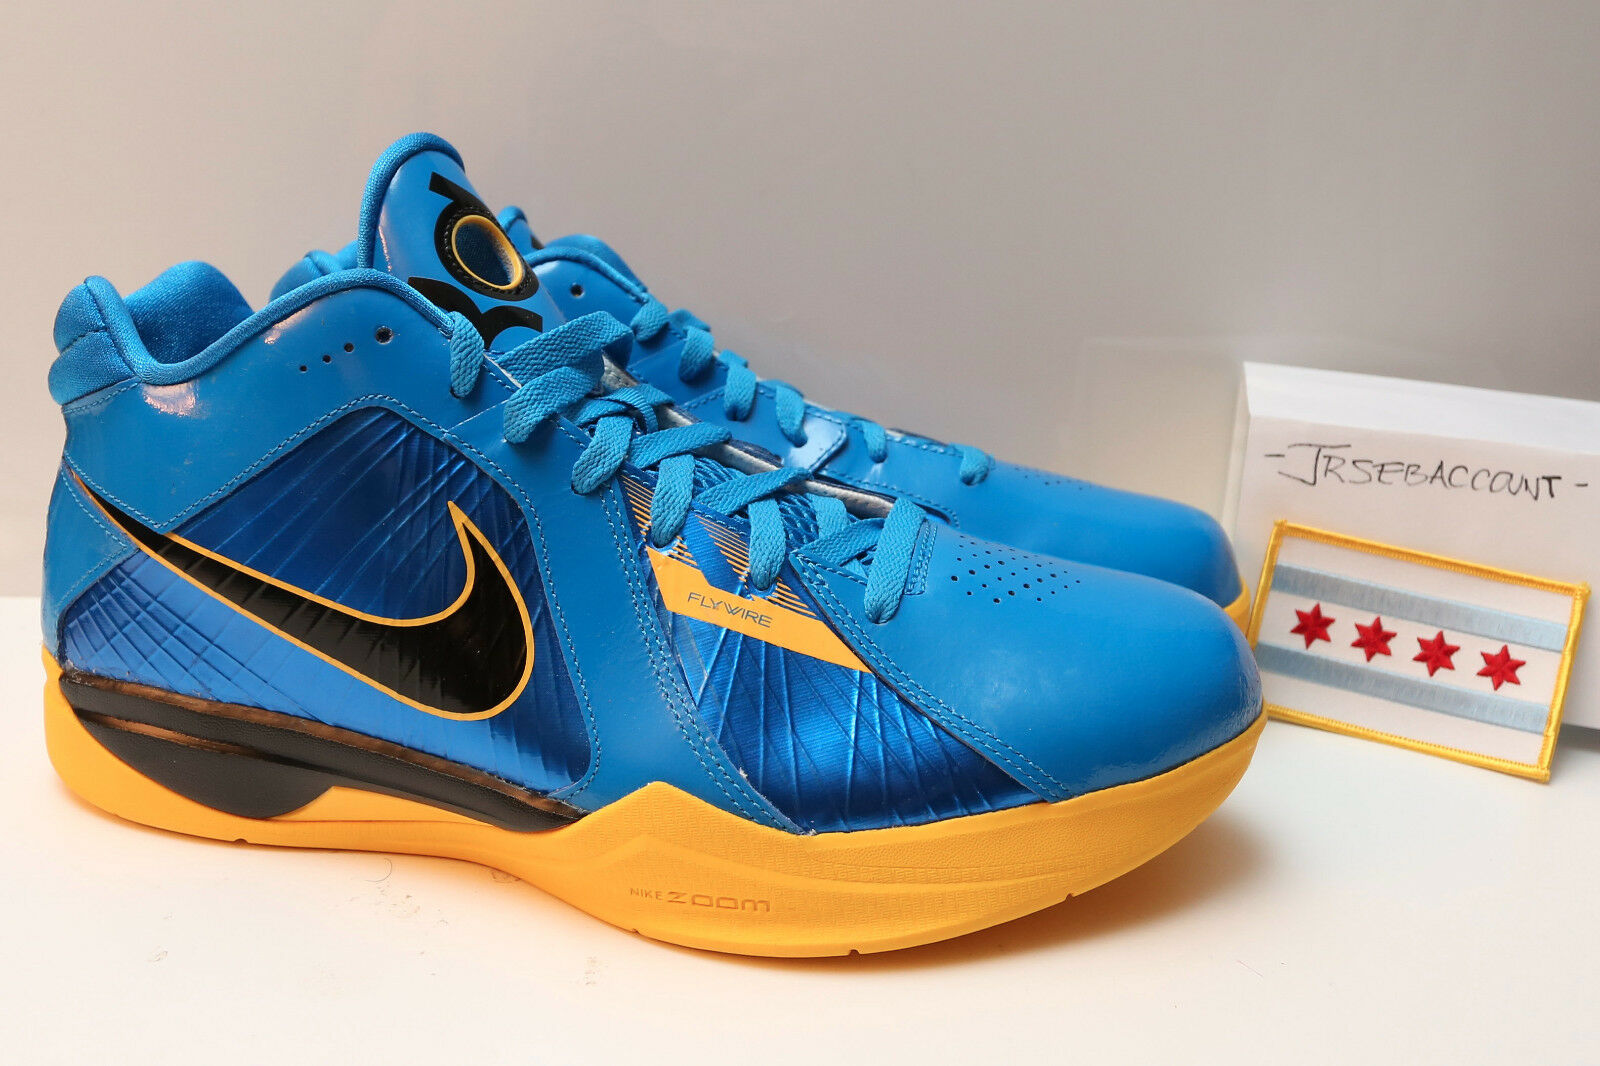 KD III 3 WARRIORS / ENTOURAGE NikeID SIze 11 NEW